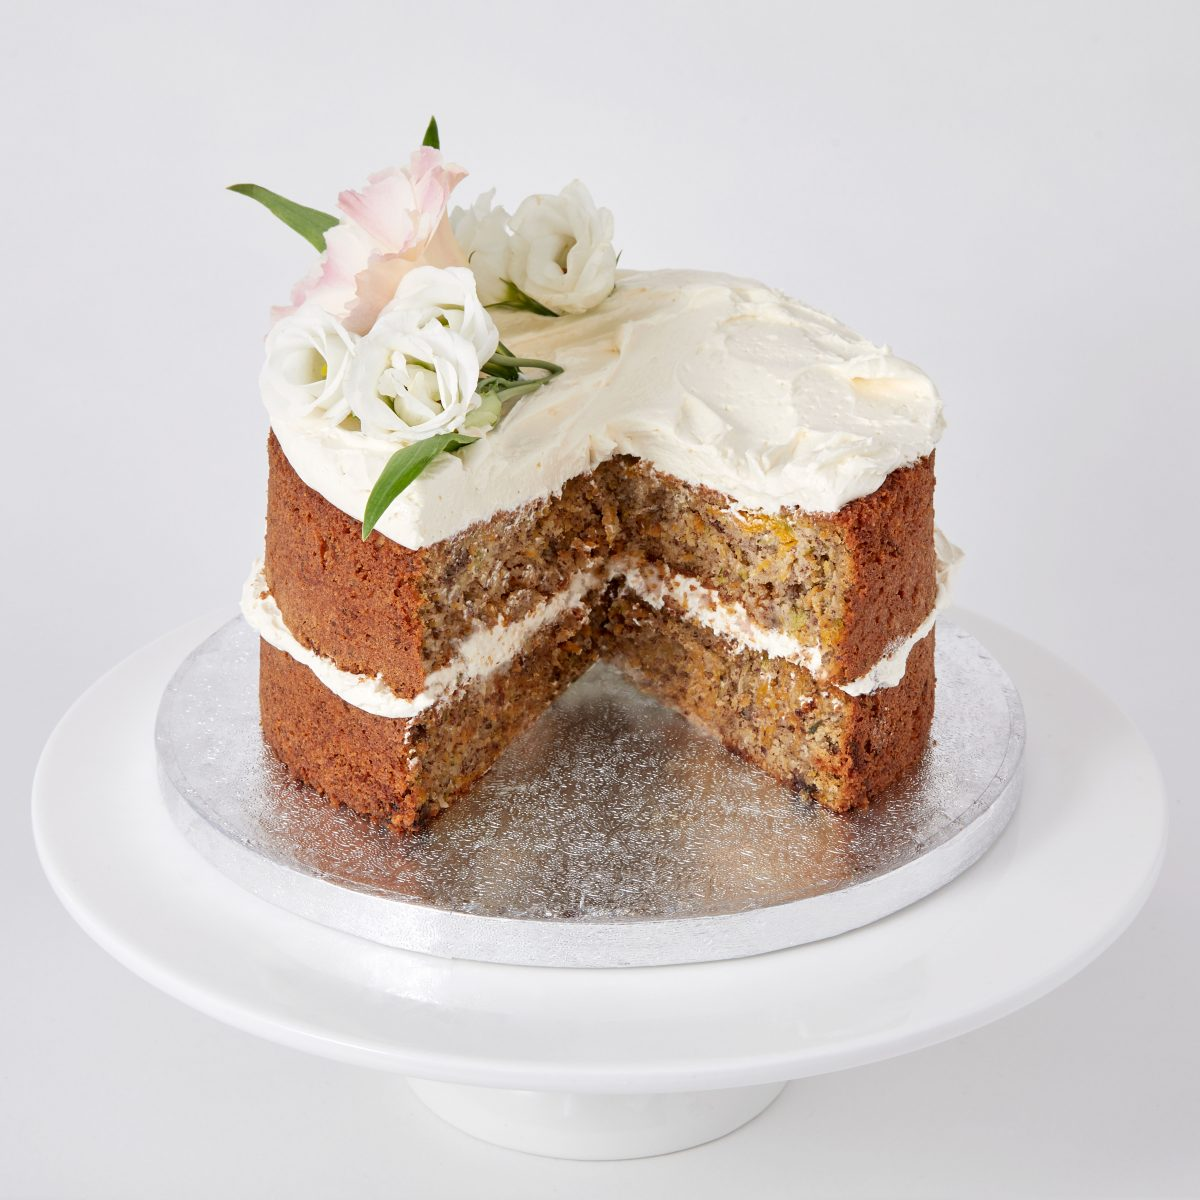 Gluten-Free Carrot and Courgette Cake | Bakery Delivery London